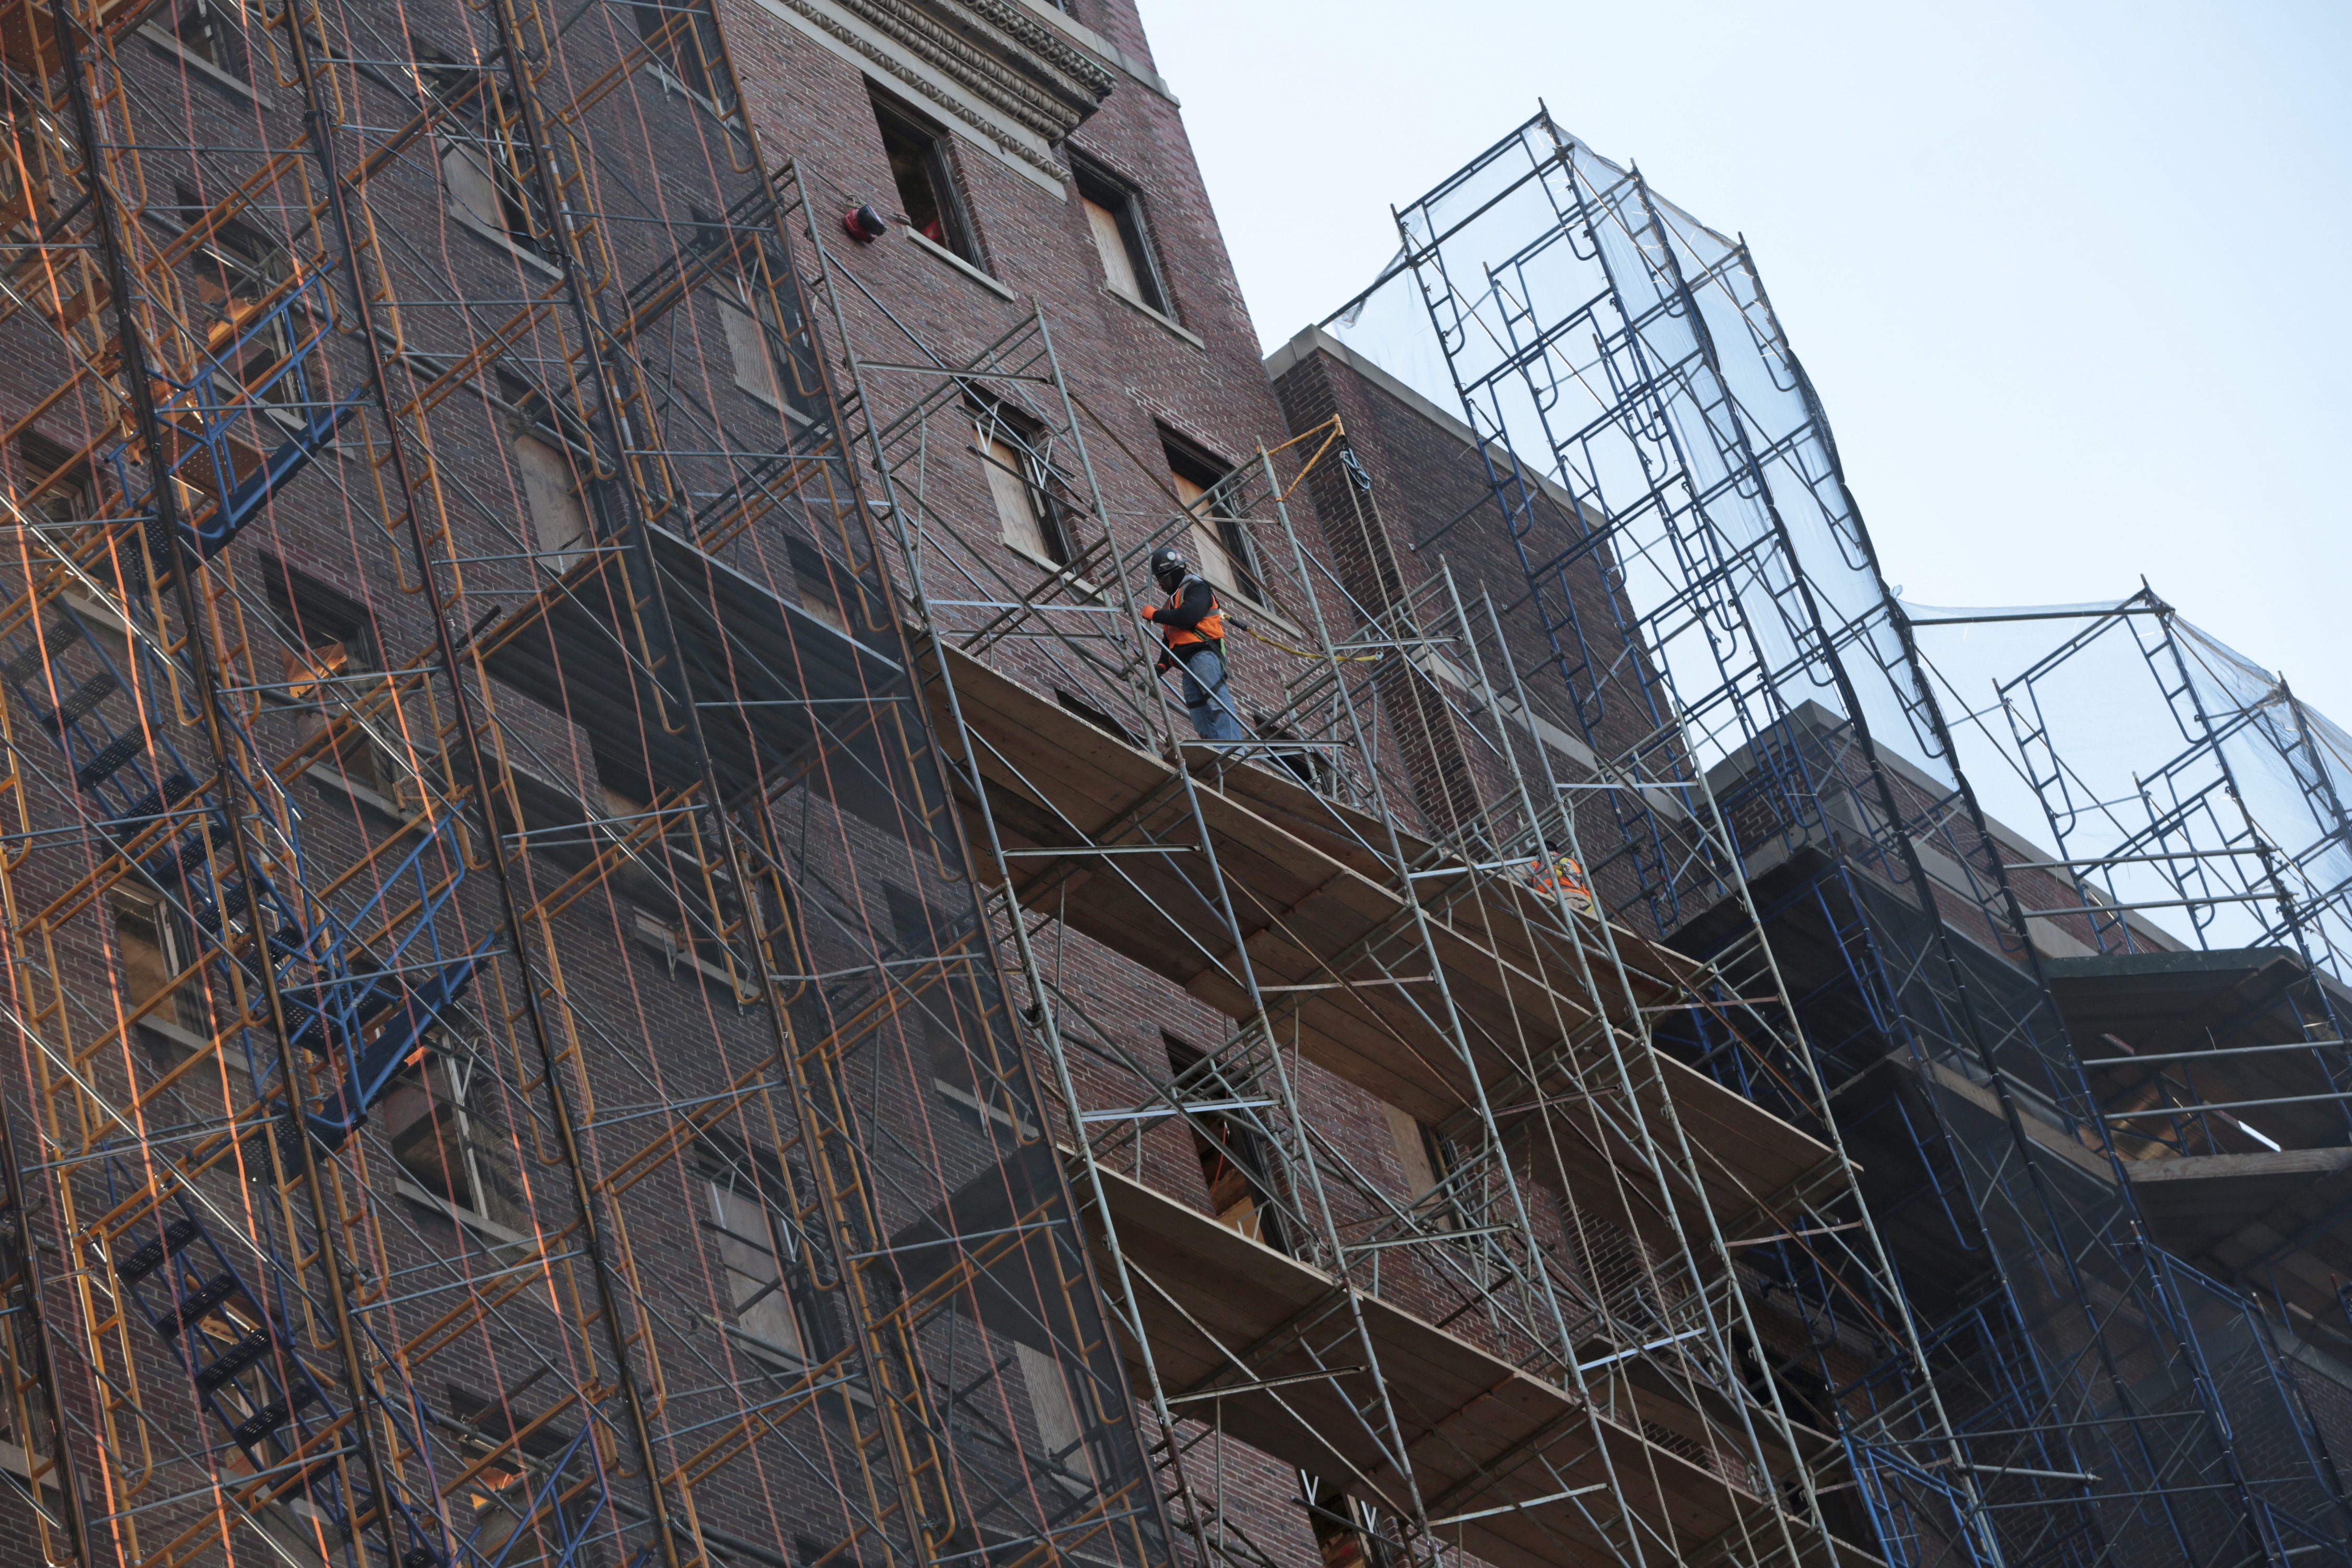 New York's Scaffold Law, originally designed to protect workers, is now doing more harm than good, according to a new study. (New York Times file photo)